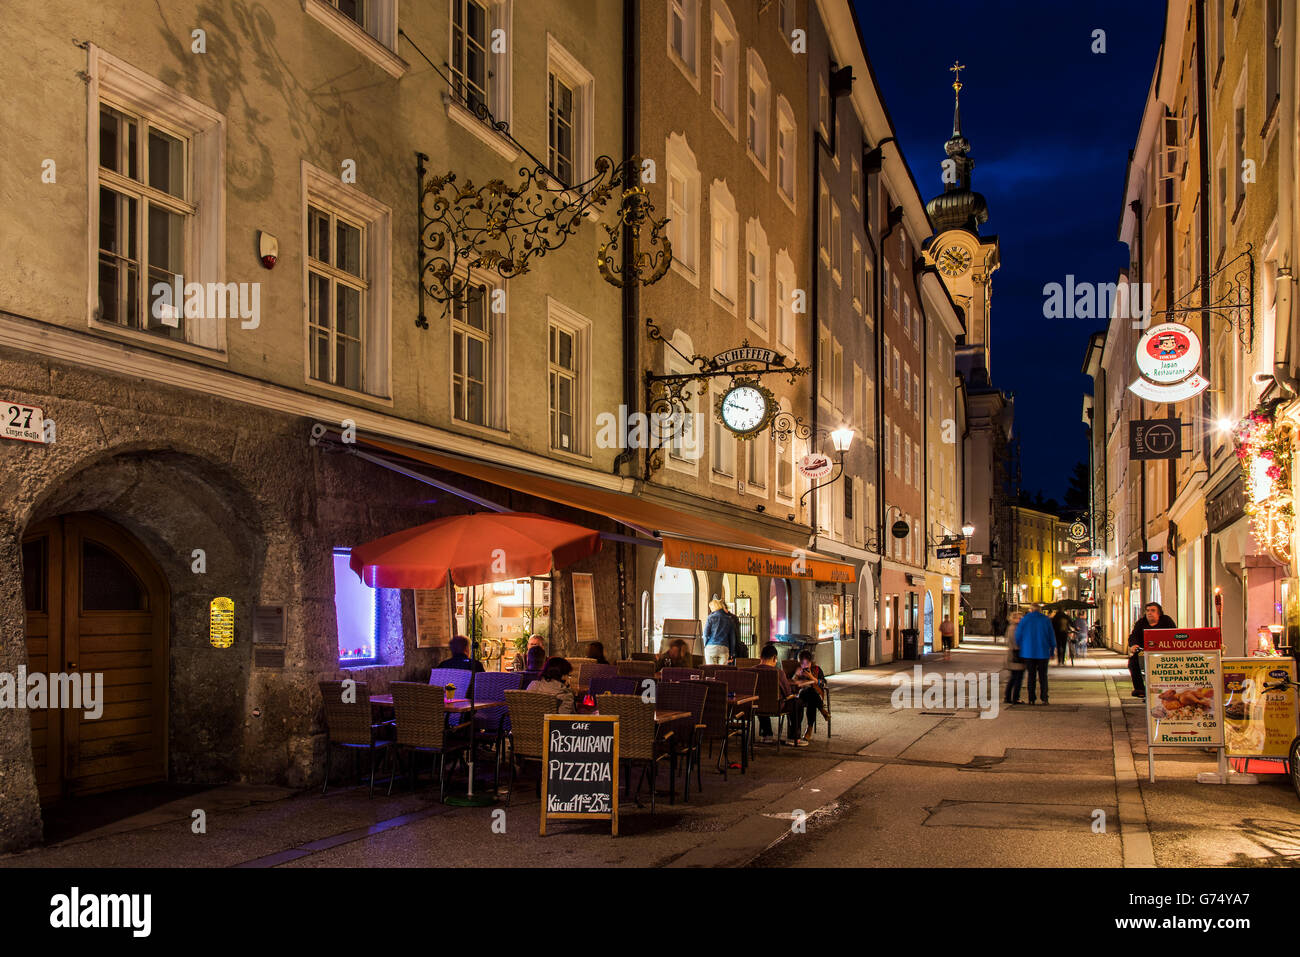 Night View Of An Outdoor Cafe Restaurant In The Old Town Salzburg Stock Photo Alamy